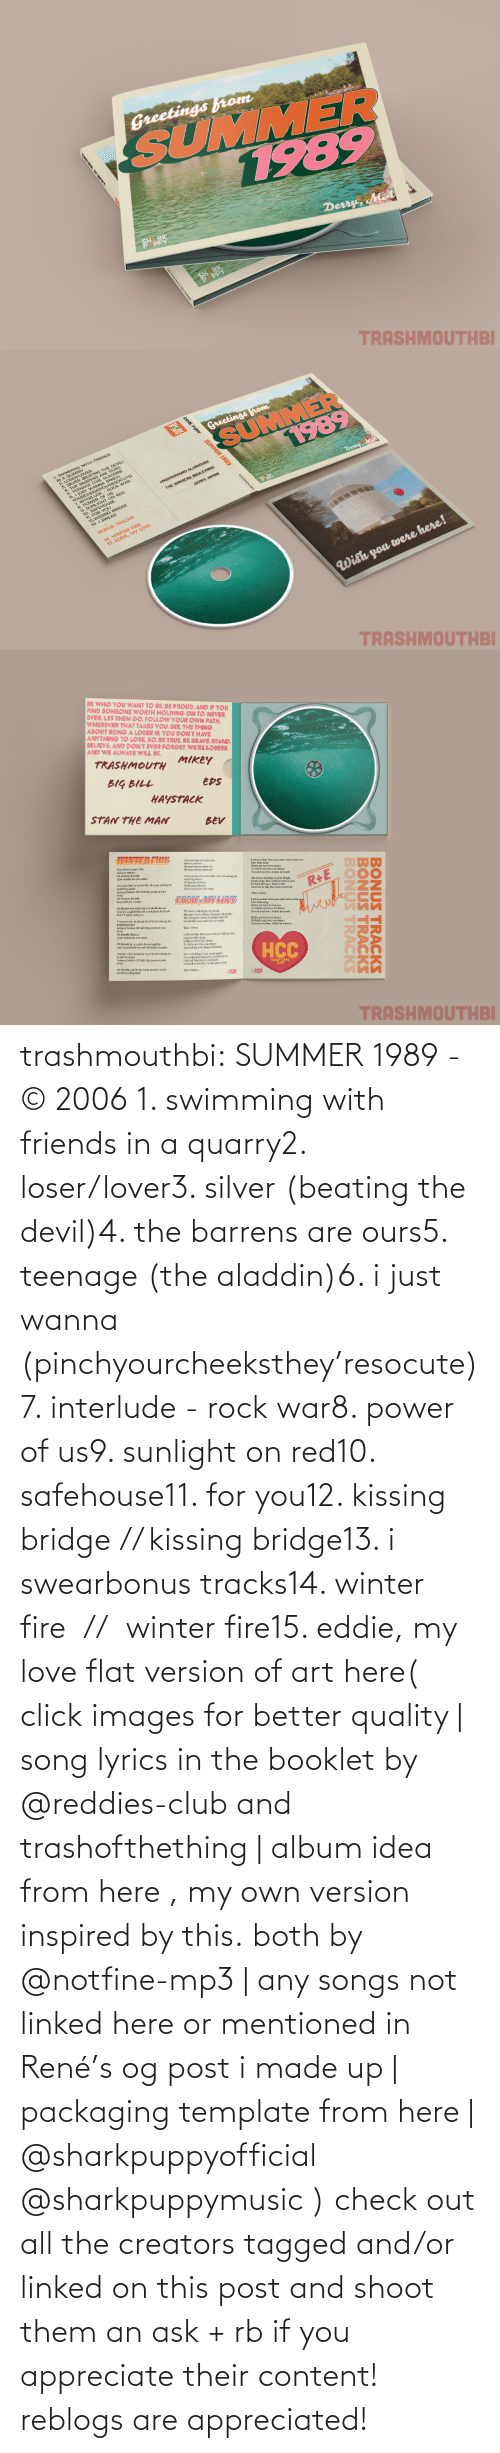 Click: trashmouthbi: SUMMER 1989 - © 2006 1. swimming with friends in a quarry2. loser/lover3. silver (beating the devil)4. the barrens are ours5. teenage (the aladdin)6. i just wanna (pinchyourcheeksthey'resocute)7. interlude - rock war8. power of us9. sunlight on red10. safehouse11. for you12. kissing bridge // kissing bridge13. i swearbonus tracks14. winter fire  //  winter fire15. eddie, my love flat version of art here( click images for better quality | song lyrics in the booklet by @reddies-club​ and trashofthething | album idea from here , my own version inspired by this. both by @notfine-mp3​ | any songs not linked here or mentioned in René's og post i made up | packaging template from here | @sharkpuppyofficial​ @sharkpuppymusic​ ) check out all the creators tagged and/or linked on this post and shoot them an ask + rb if you appreciate their content! reblogs are appreciated!